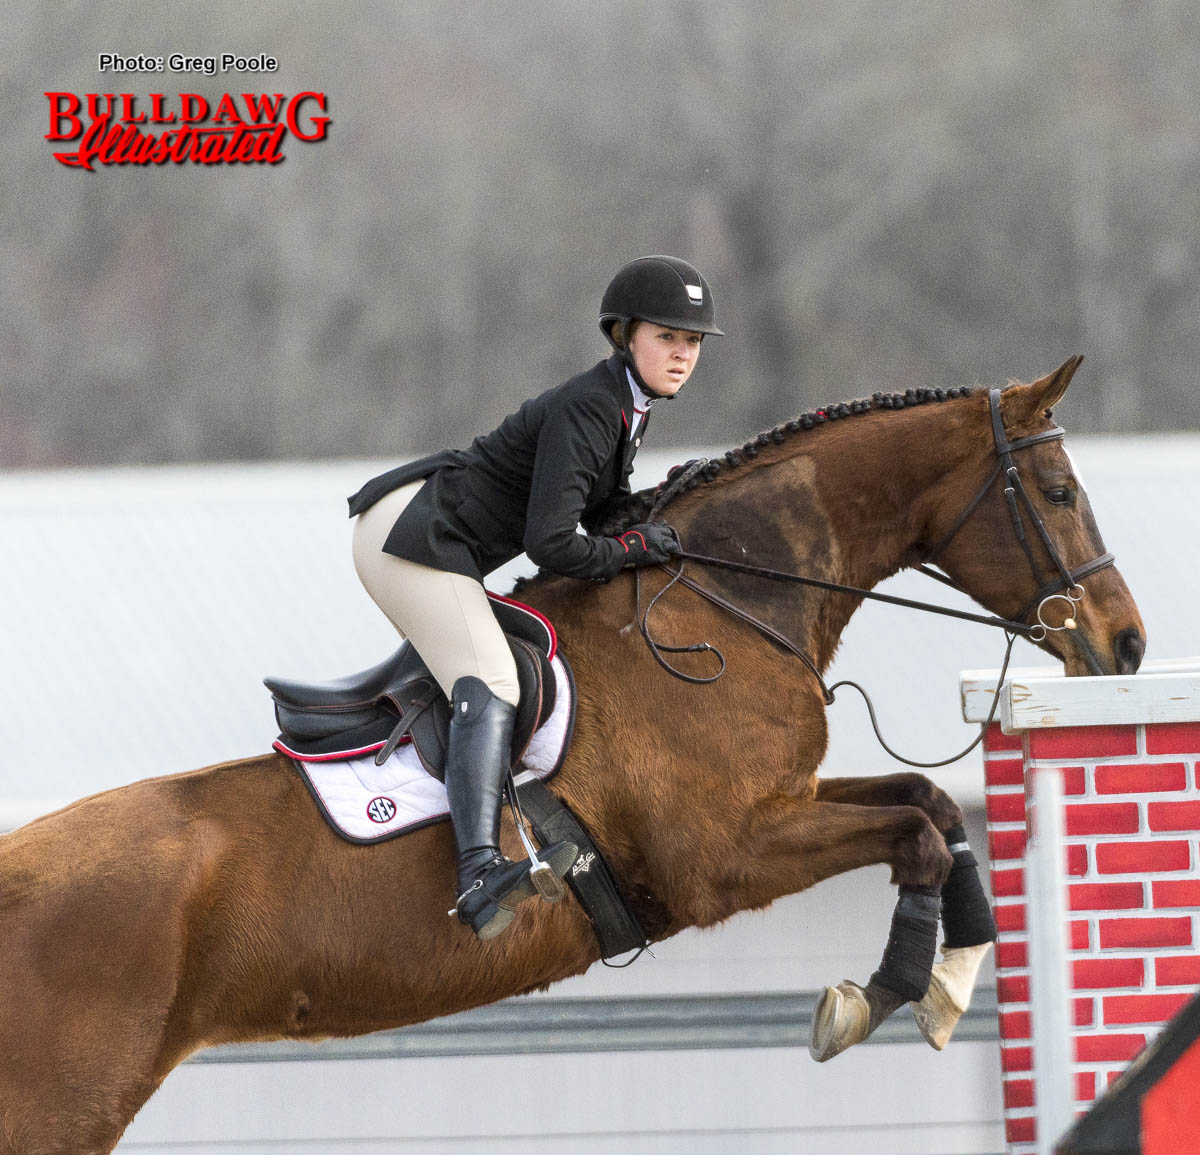 Georgia's SEC Championship equestrian team will be the no. 2 seed in the 2017 National Championship